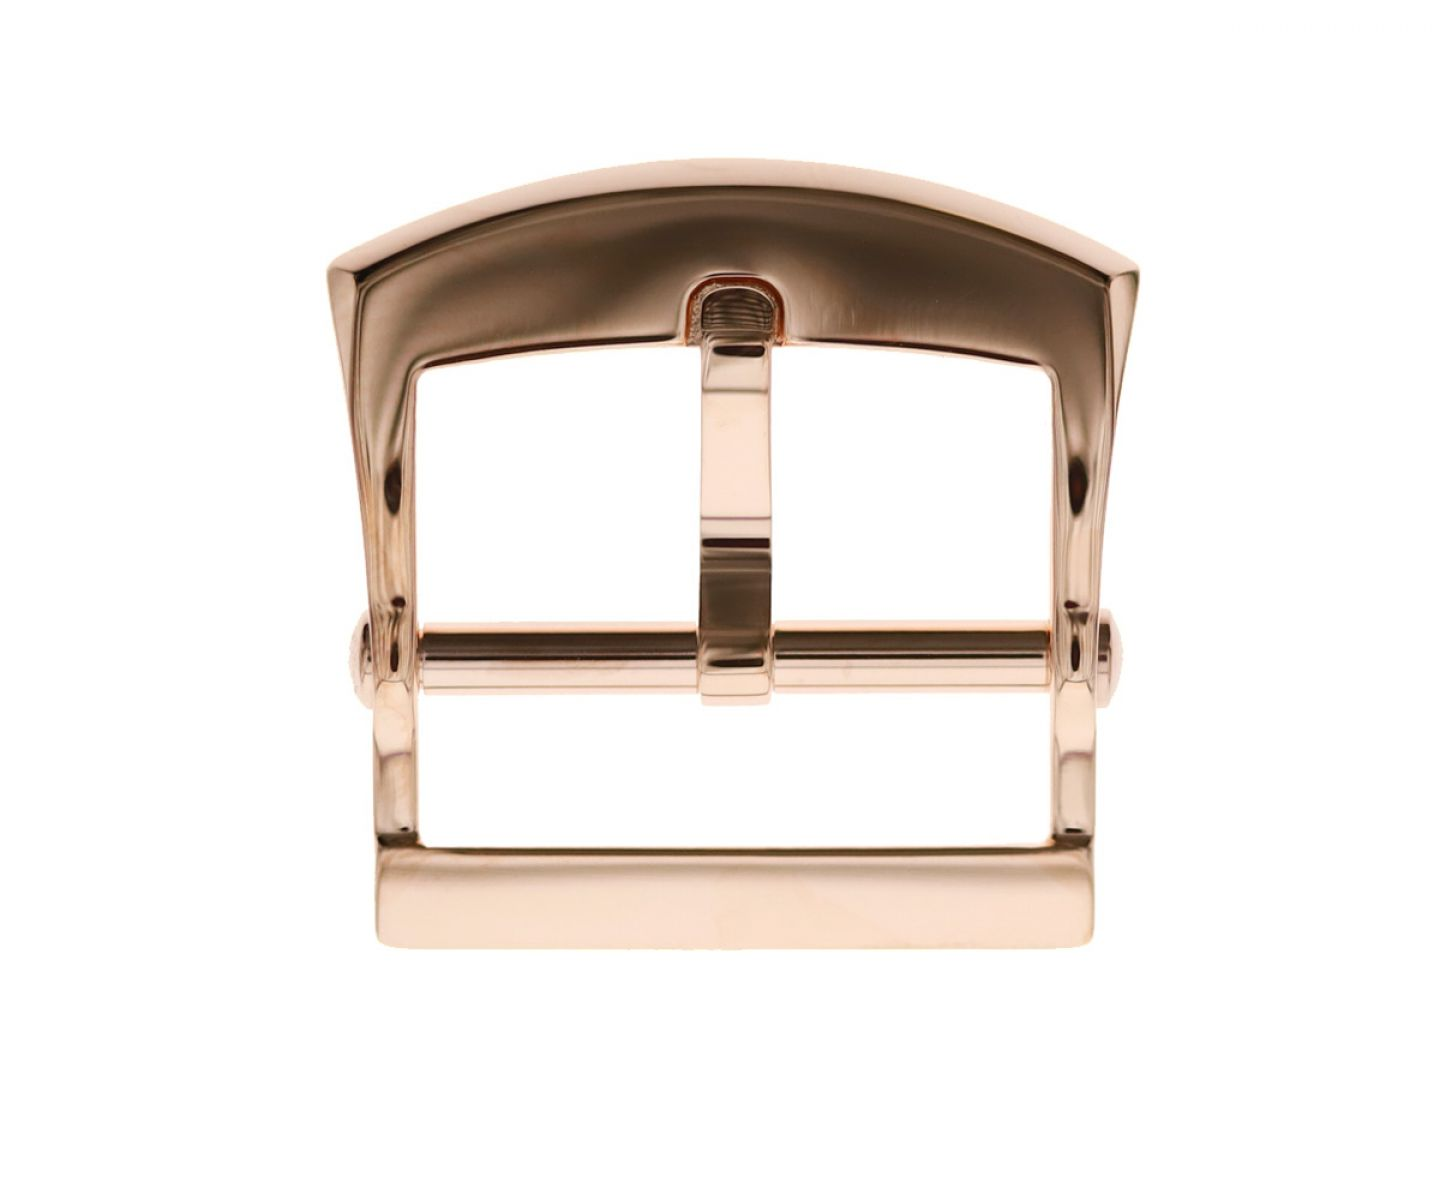 Stainless Steel High Grade Buckle 20mm. Rose Gloss